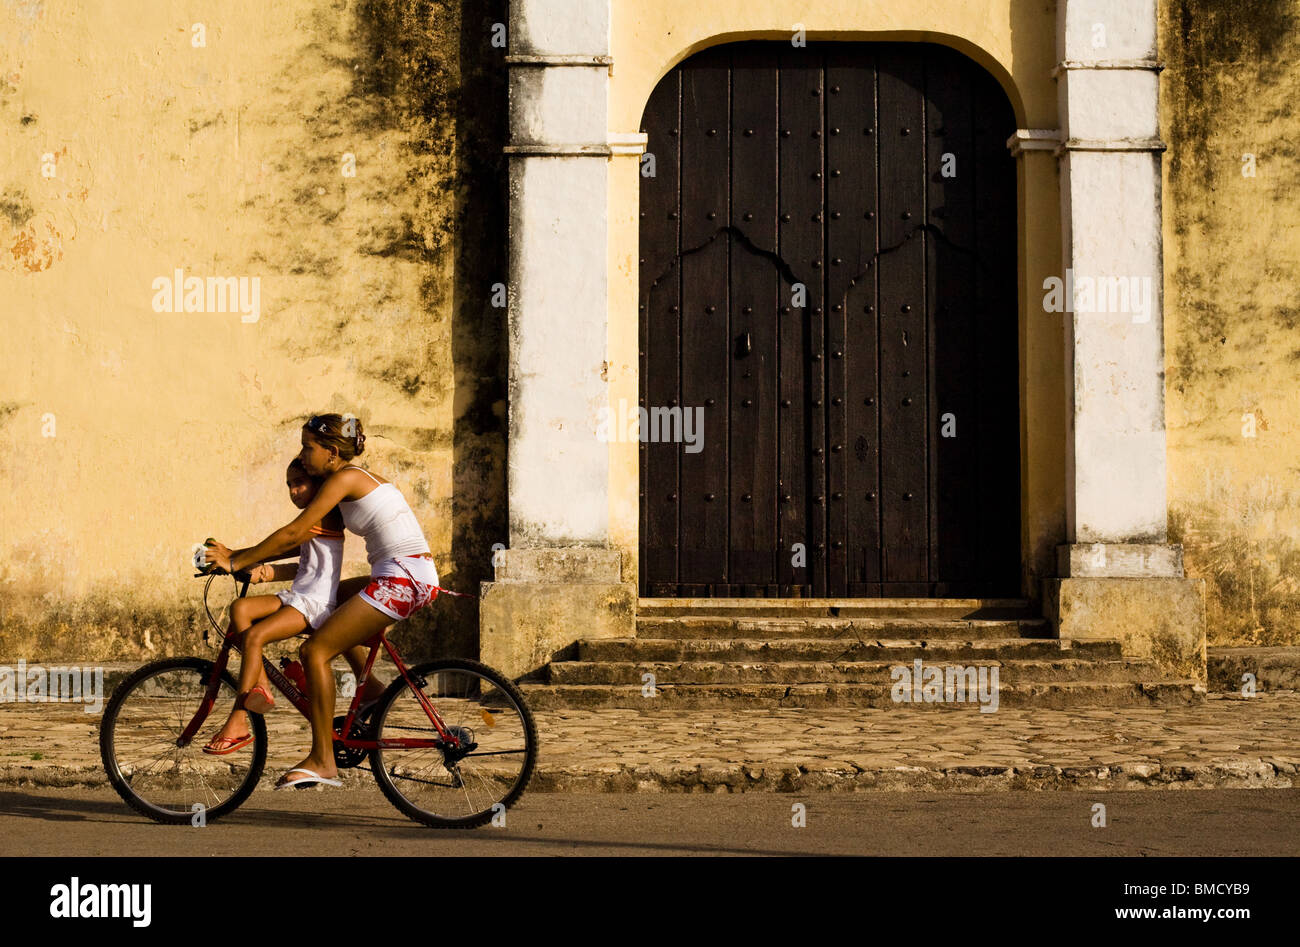 Two girls ride a bicycle in Remedios, Cuba on Thursday July 17, 2008. - Stock Image